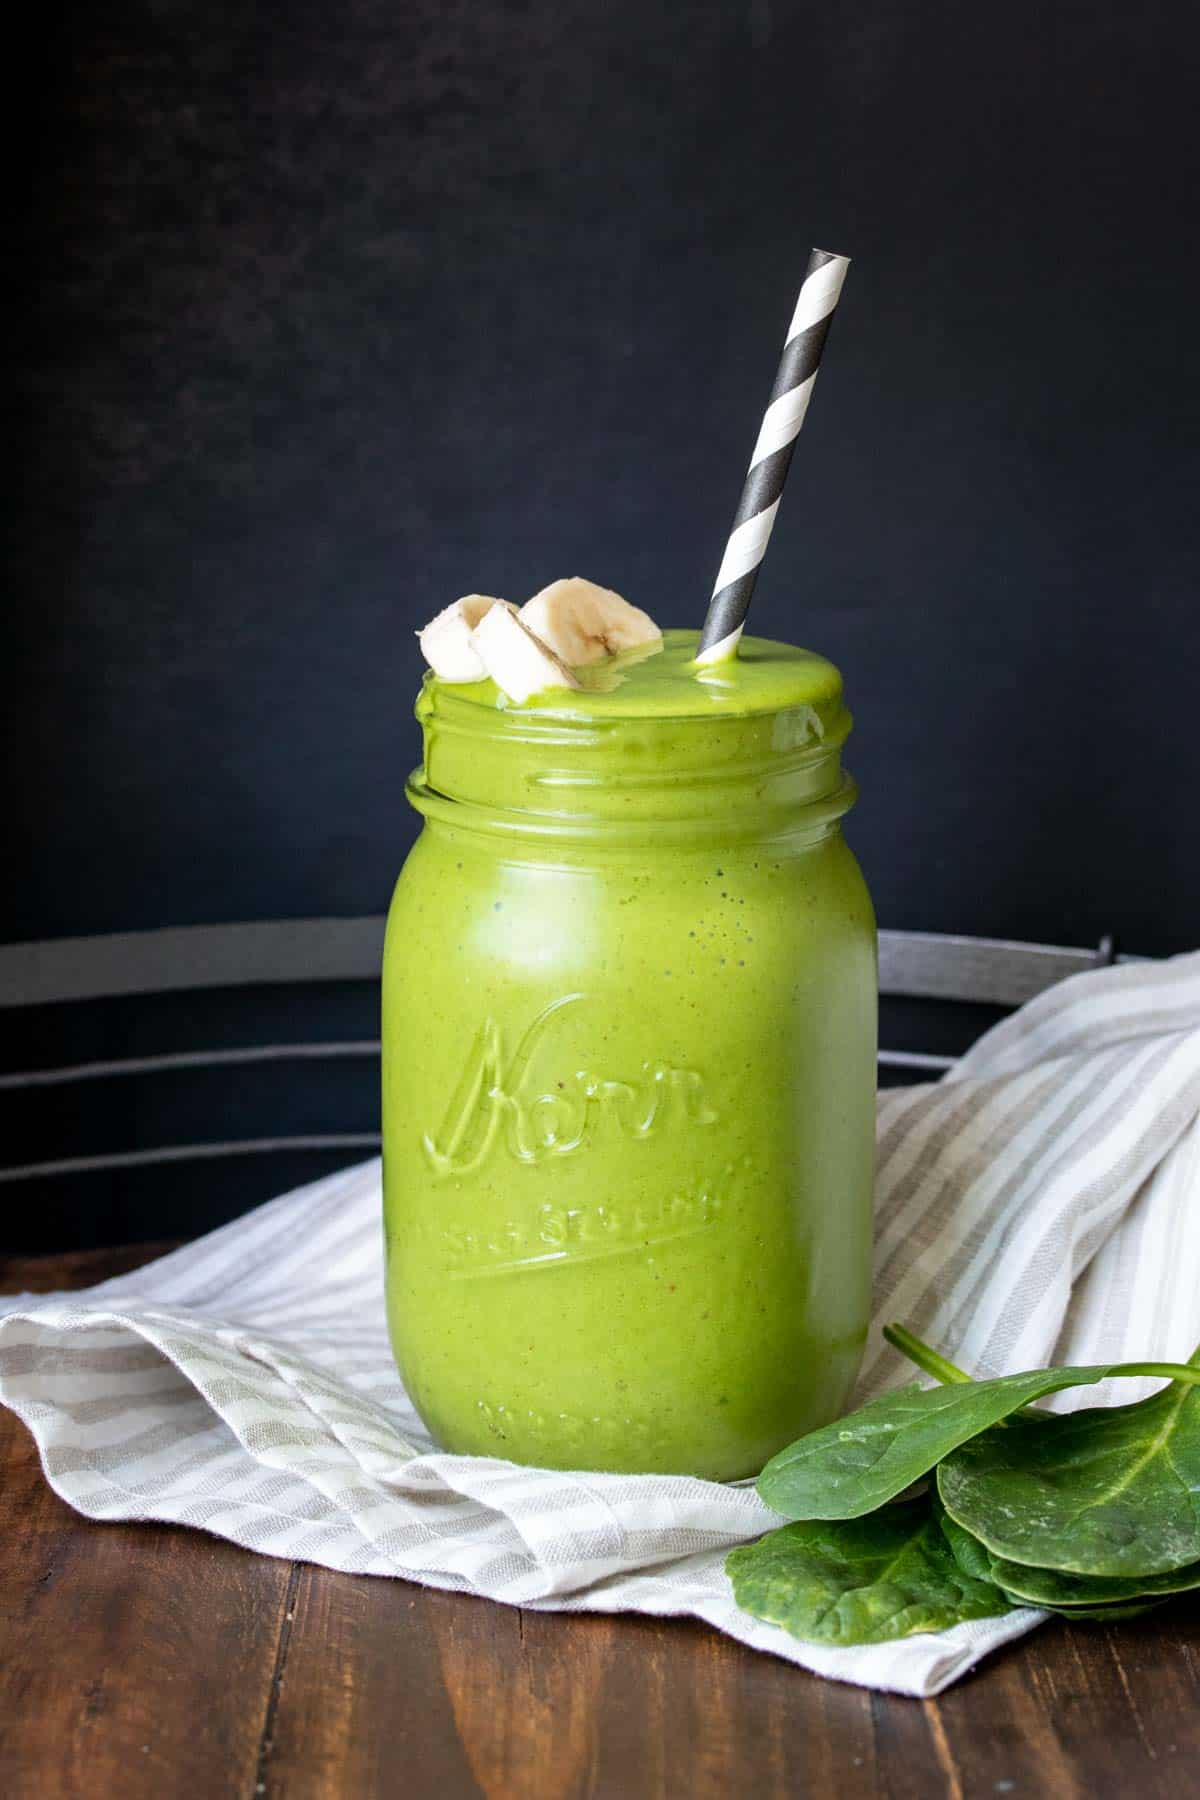 A green smoothie with sliced bananas on the top in a glass jar